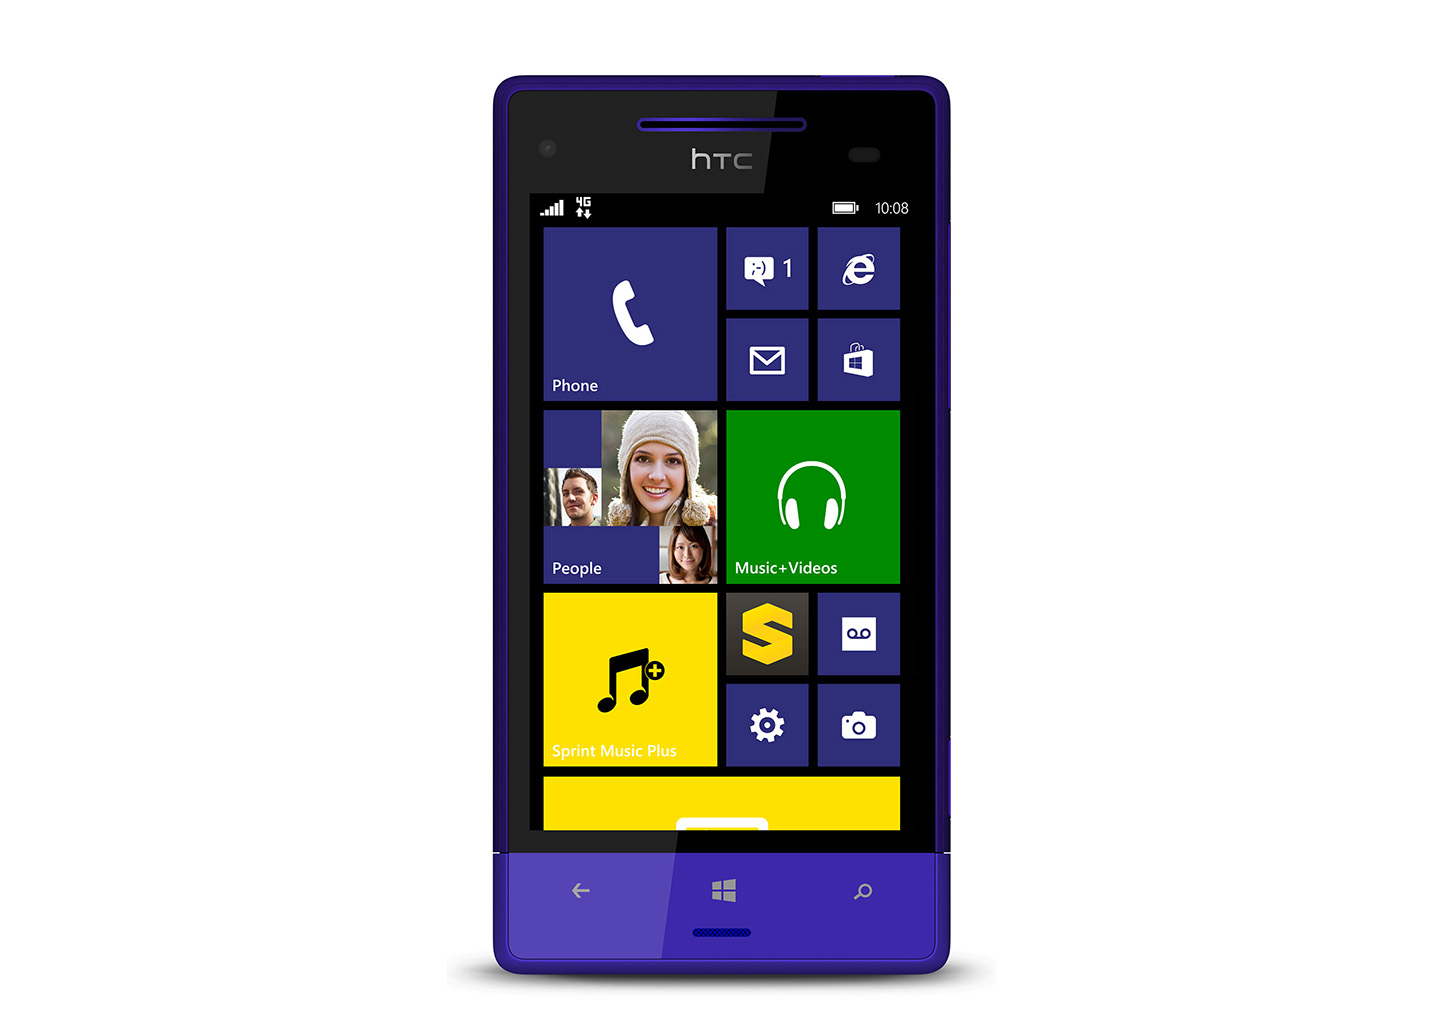 Sprint launches htc 8xt screen 4 3 400 snapdragon for Windows phone